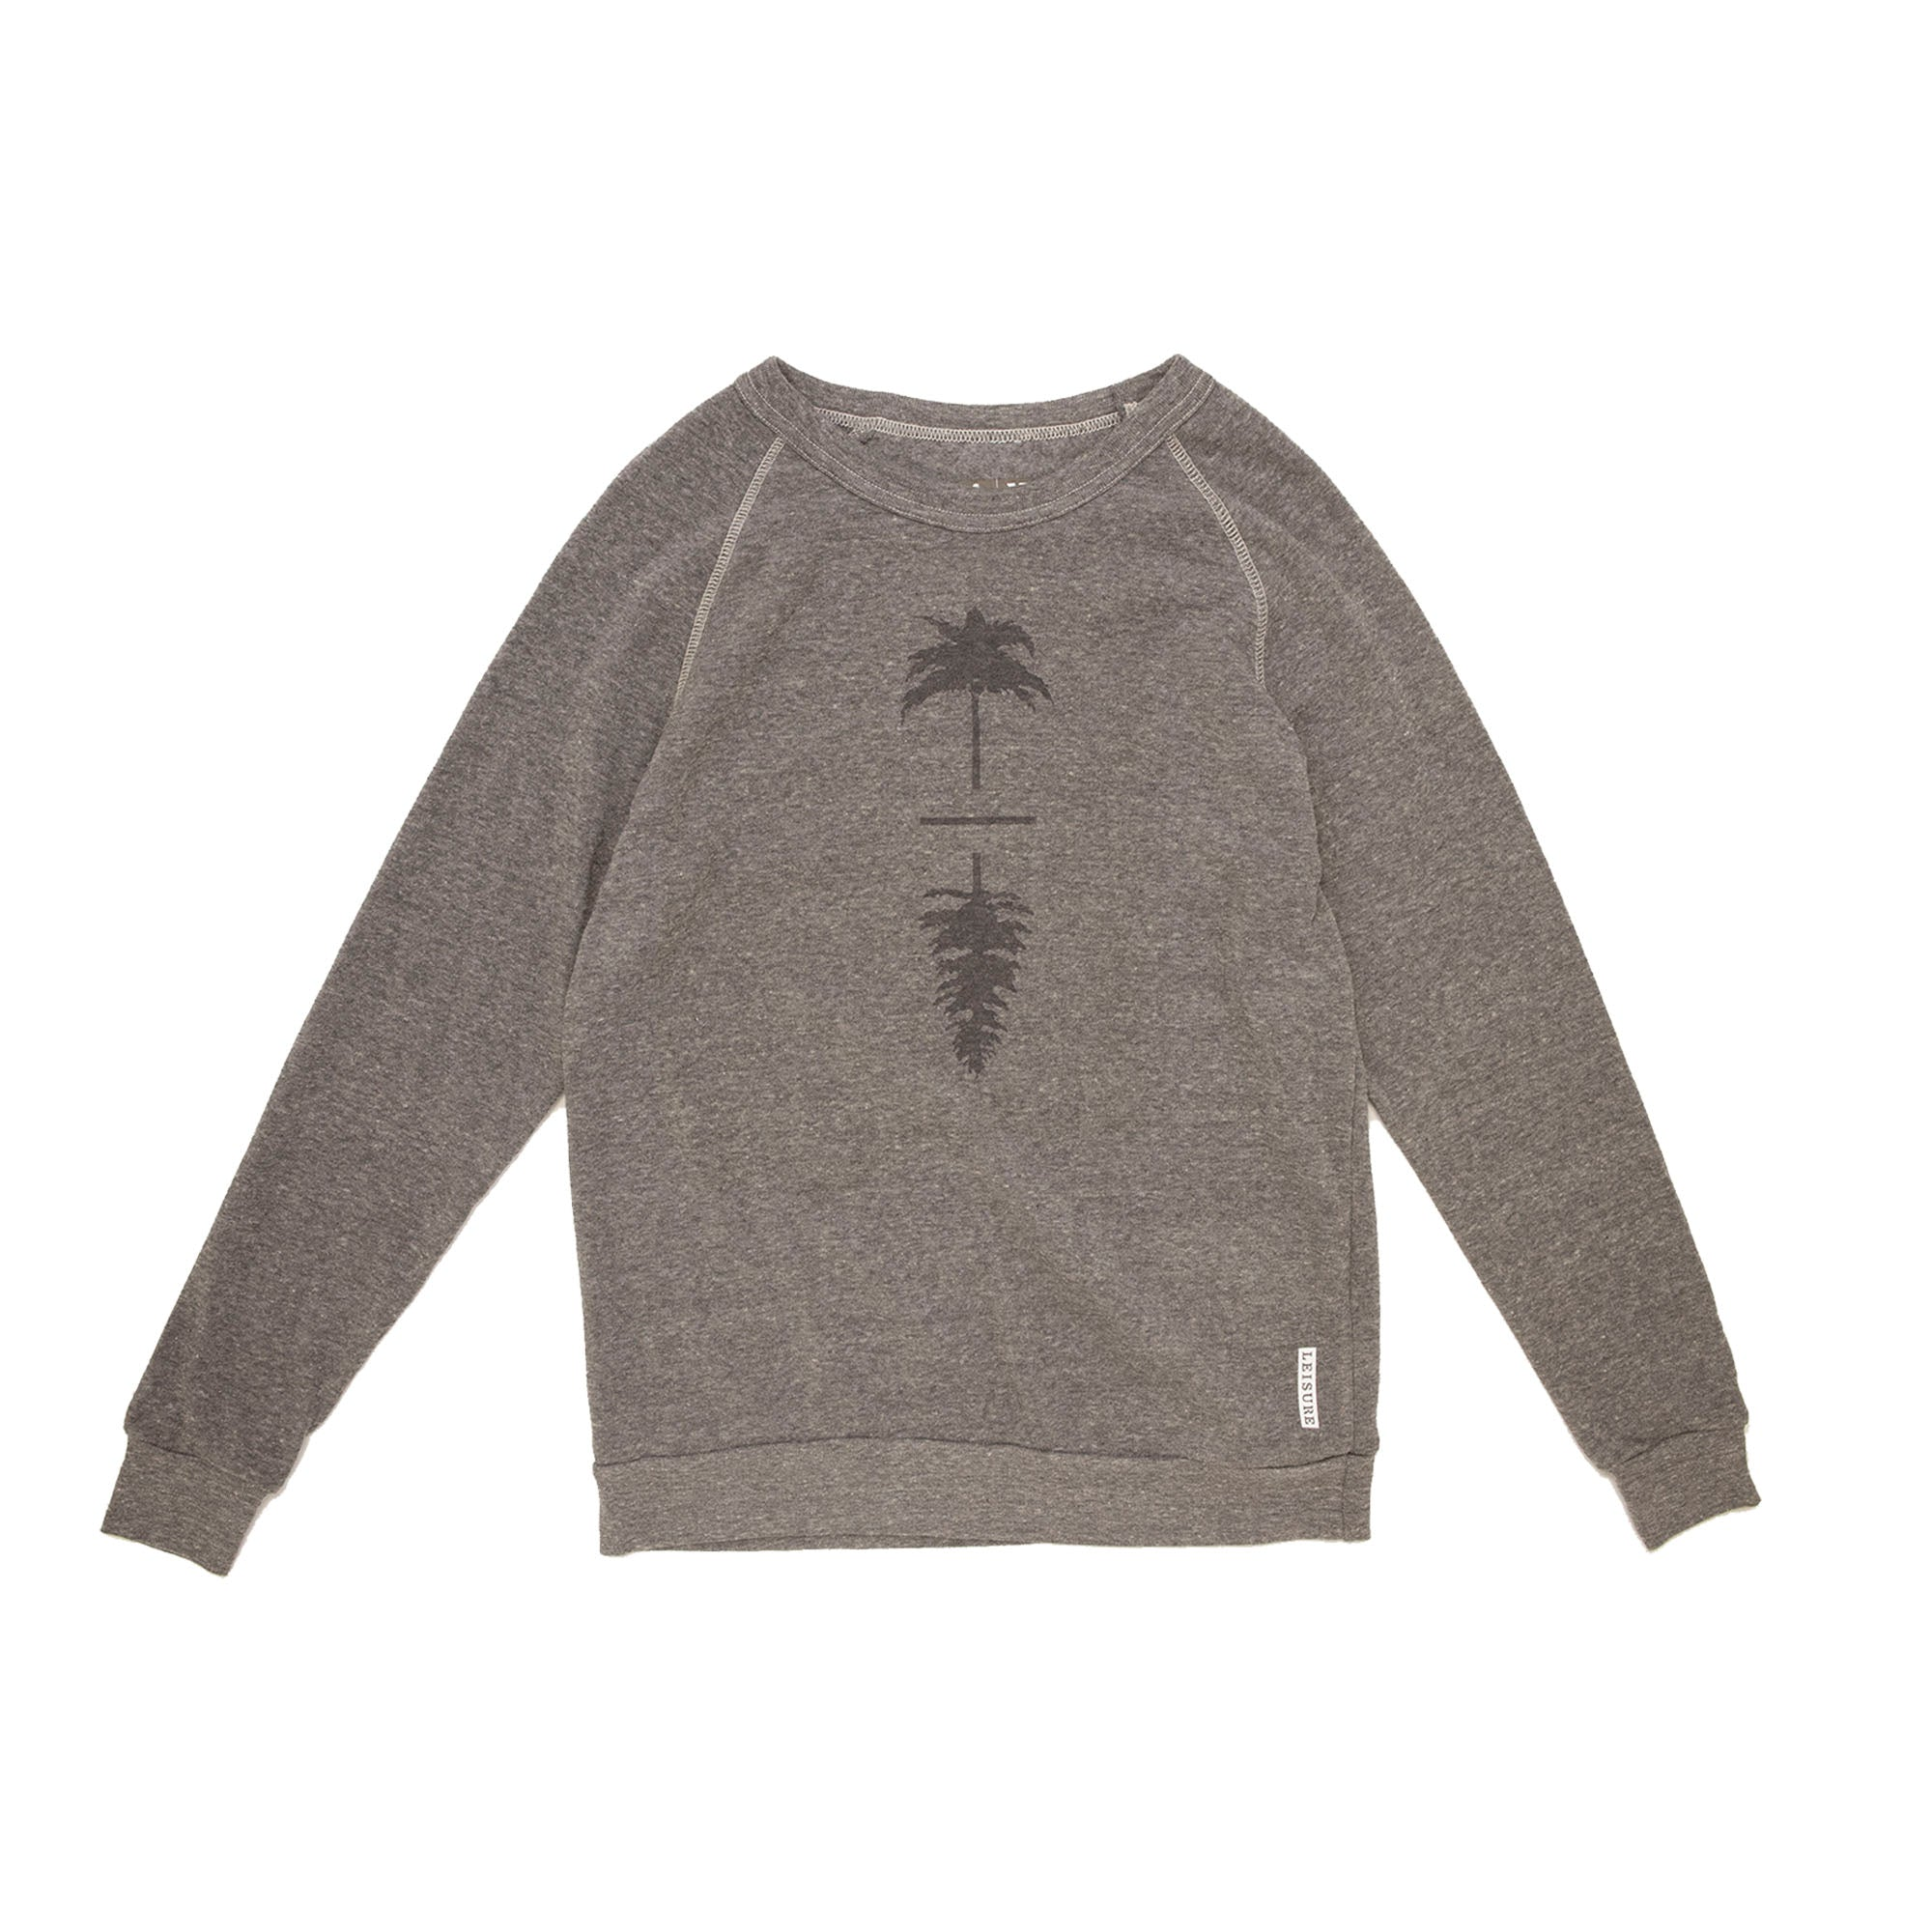 Coast To Coast Old Growth Palm To Pine Crewneck